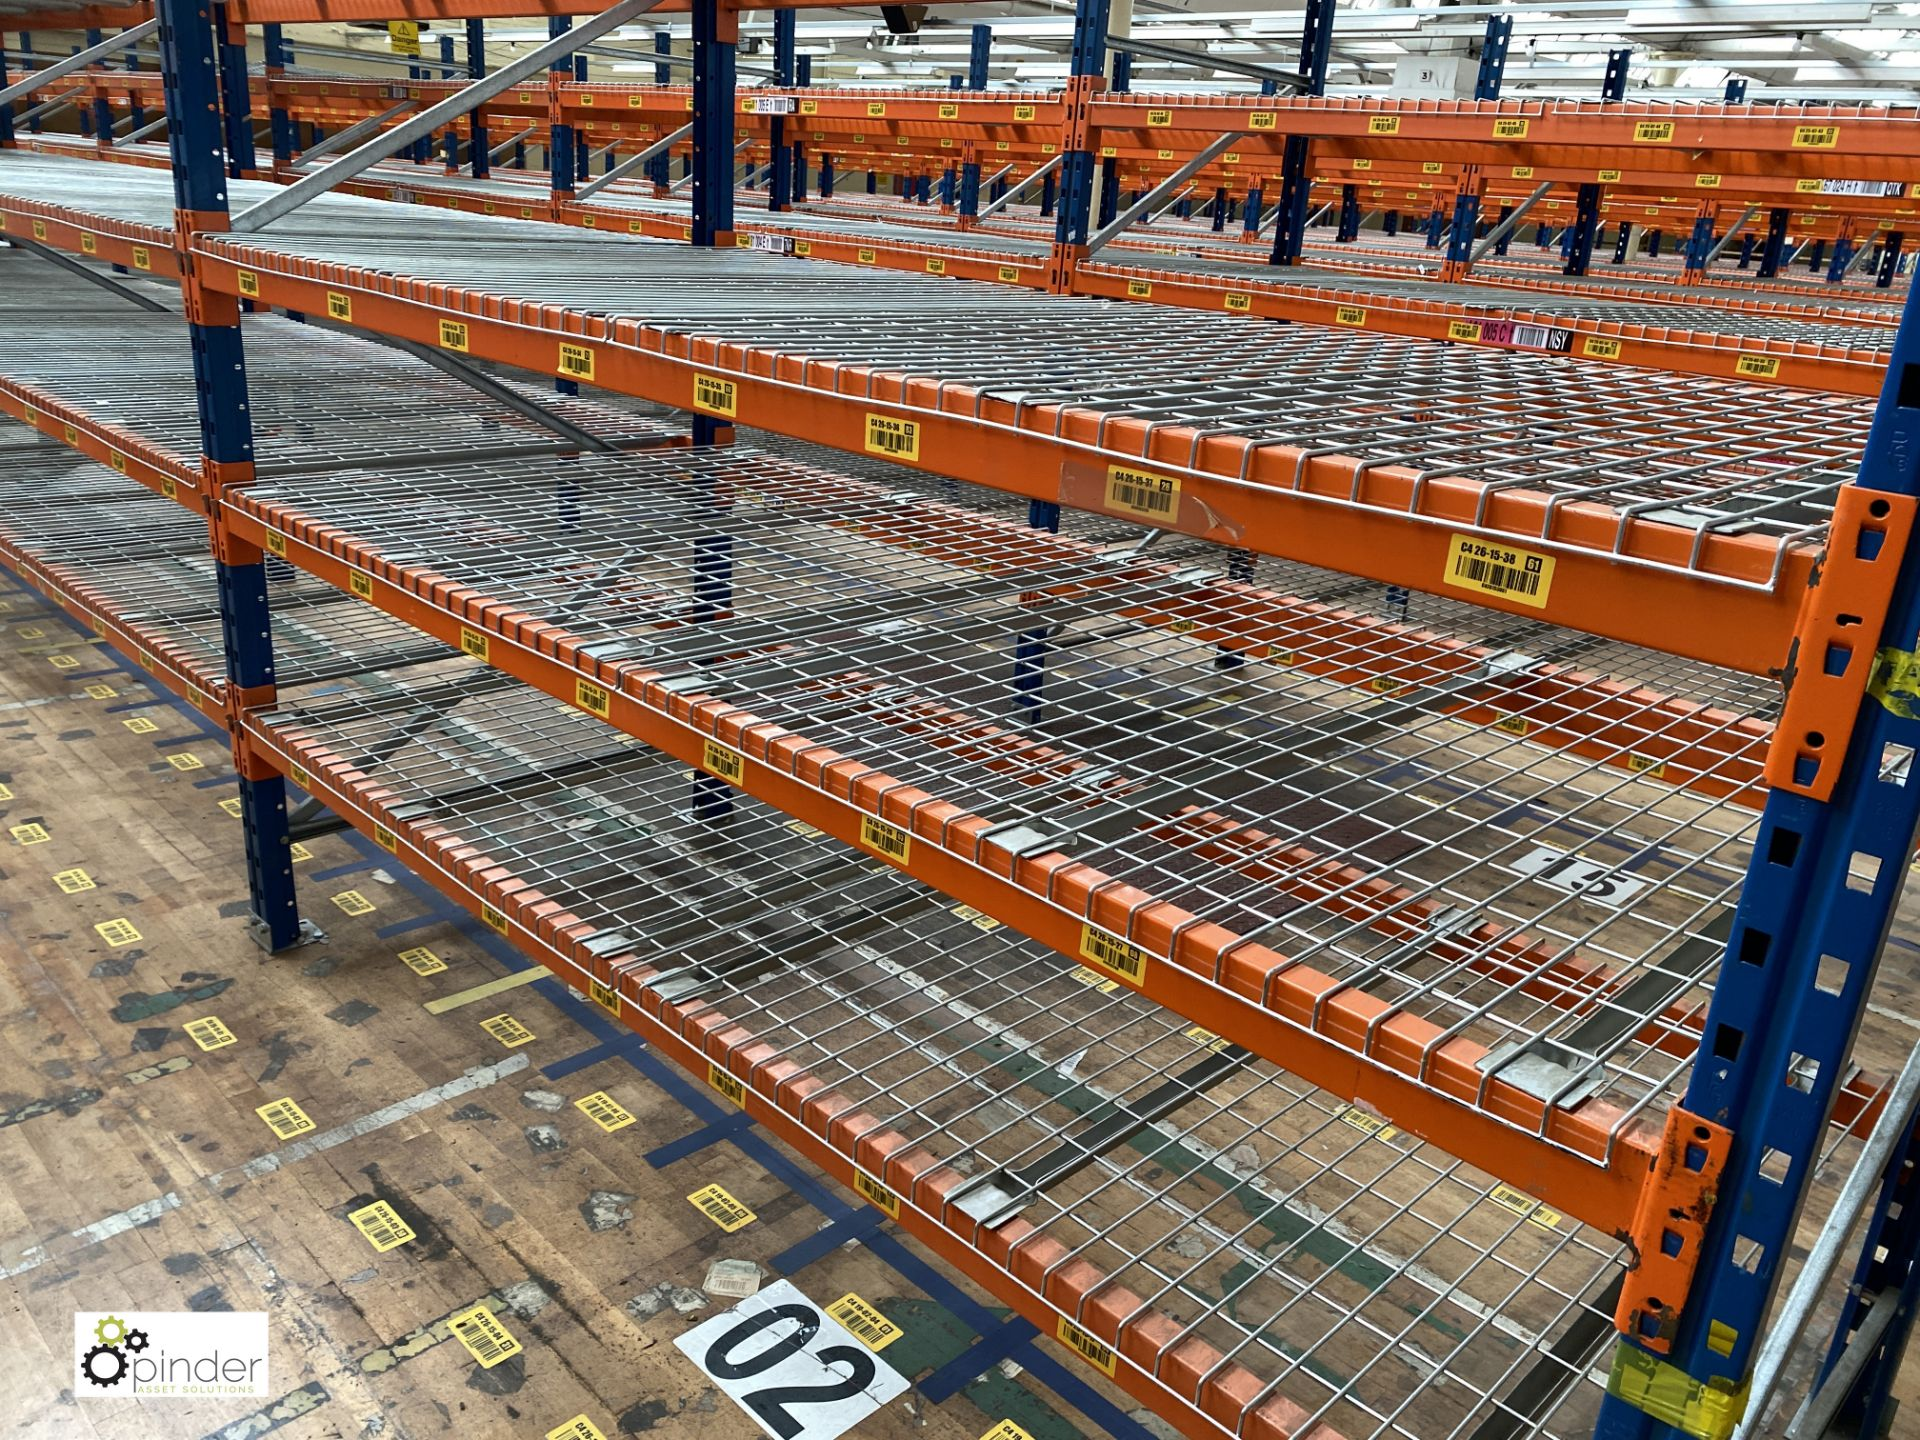 7 bays PSS 2K85 16 boltless Stock Racking, comprising 8 uprights 2400mm x 1200mm, 56 beams 2700mm, - Image 3 of 3